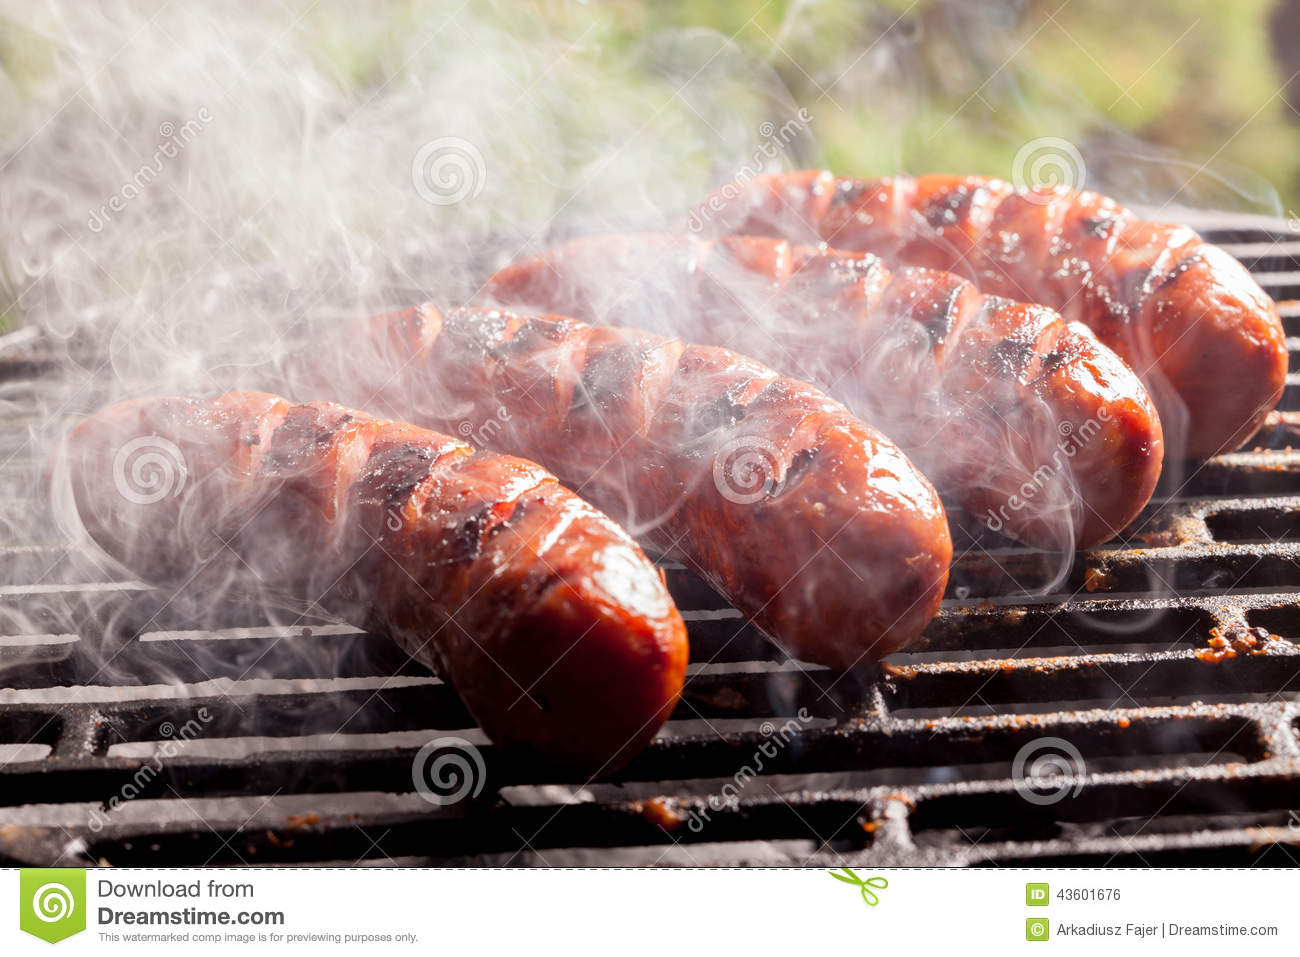 Grilling sausages. stock photo. Image of sausage ...